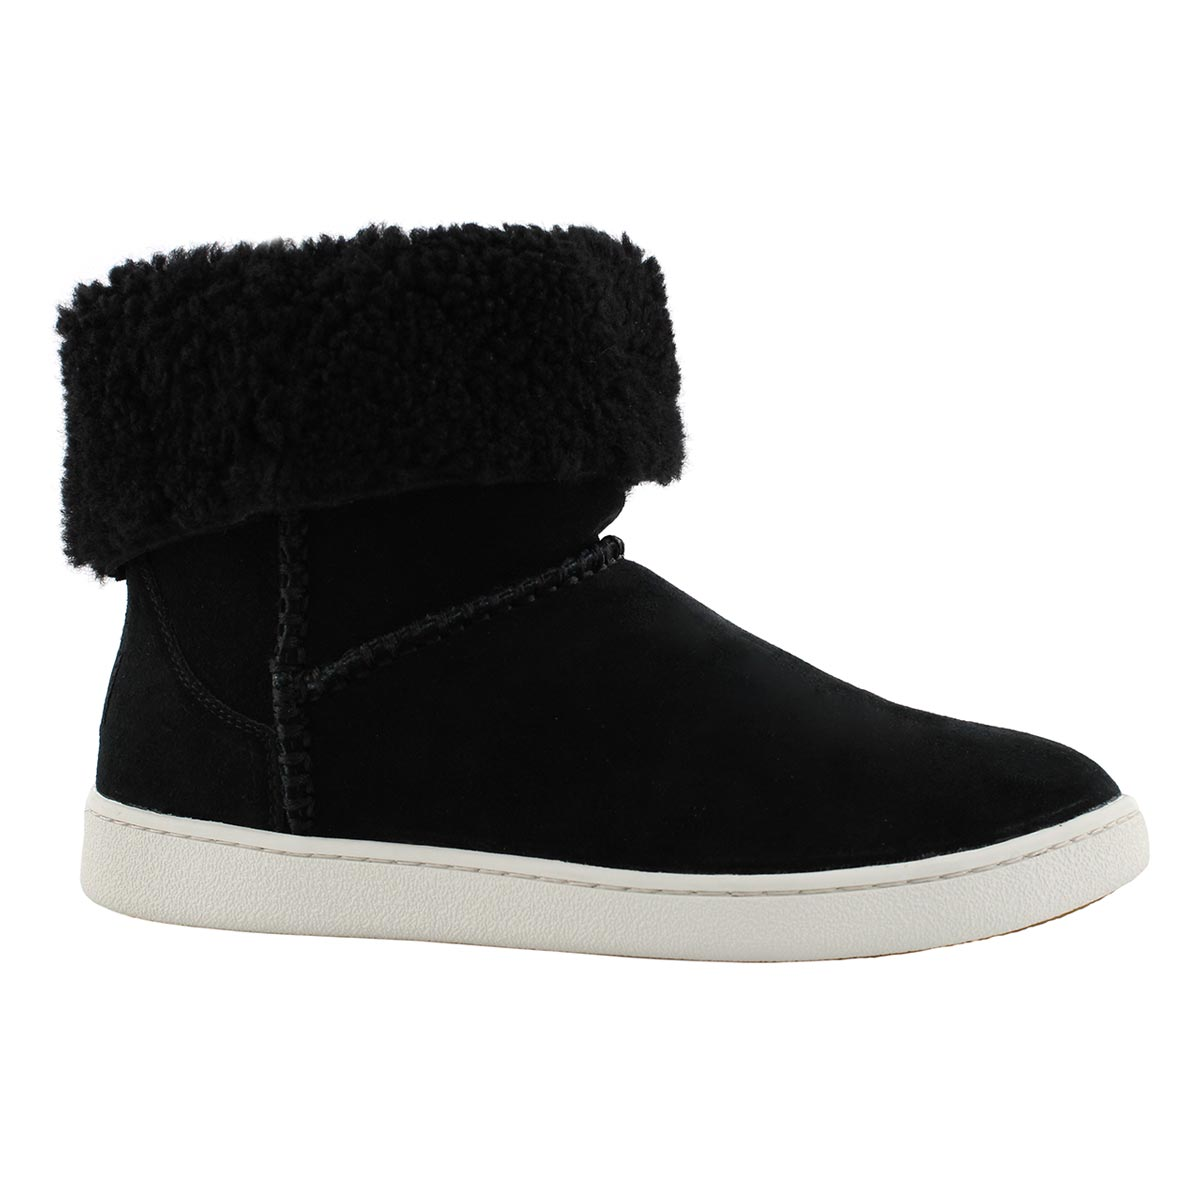 Lds Mika Classic blk cuffable boot